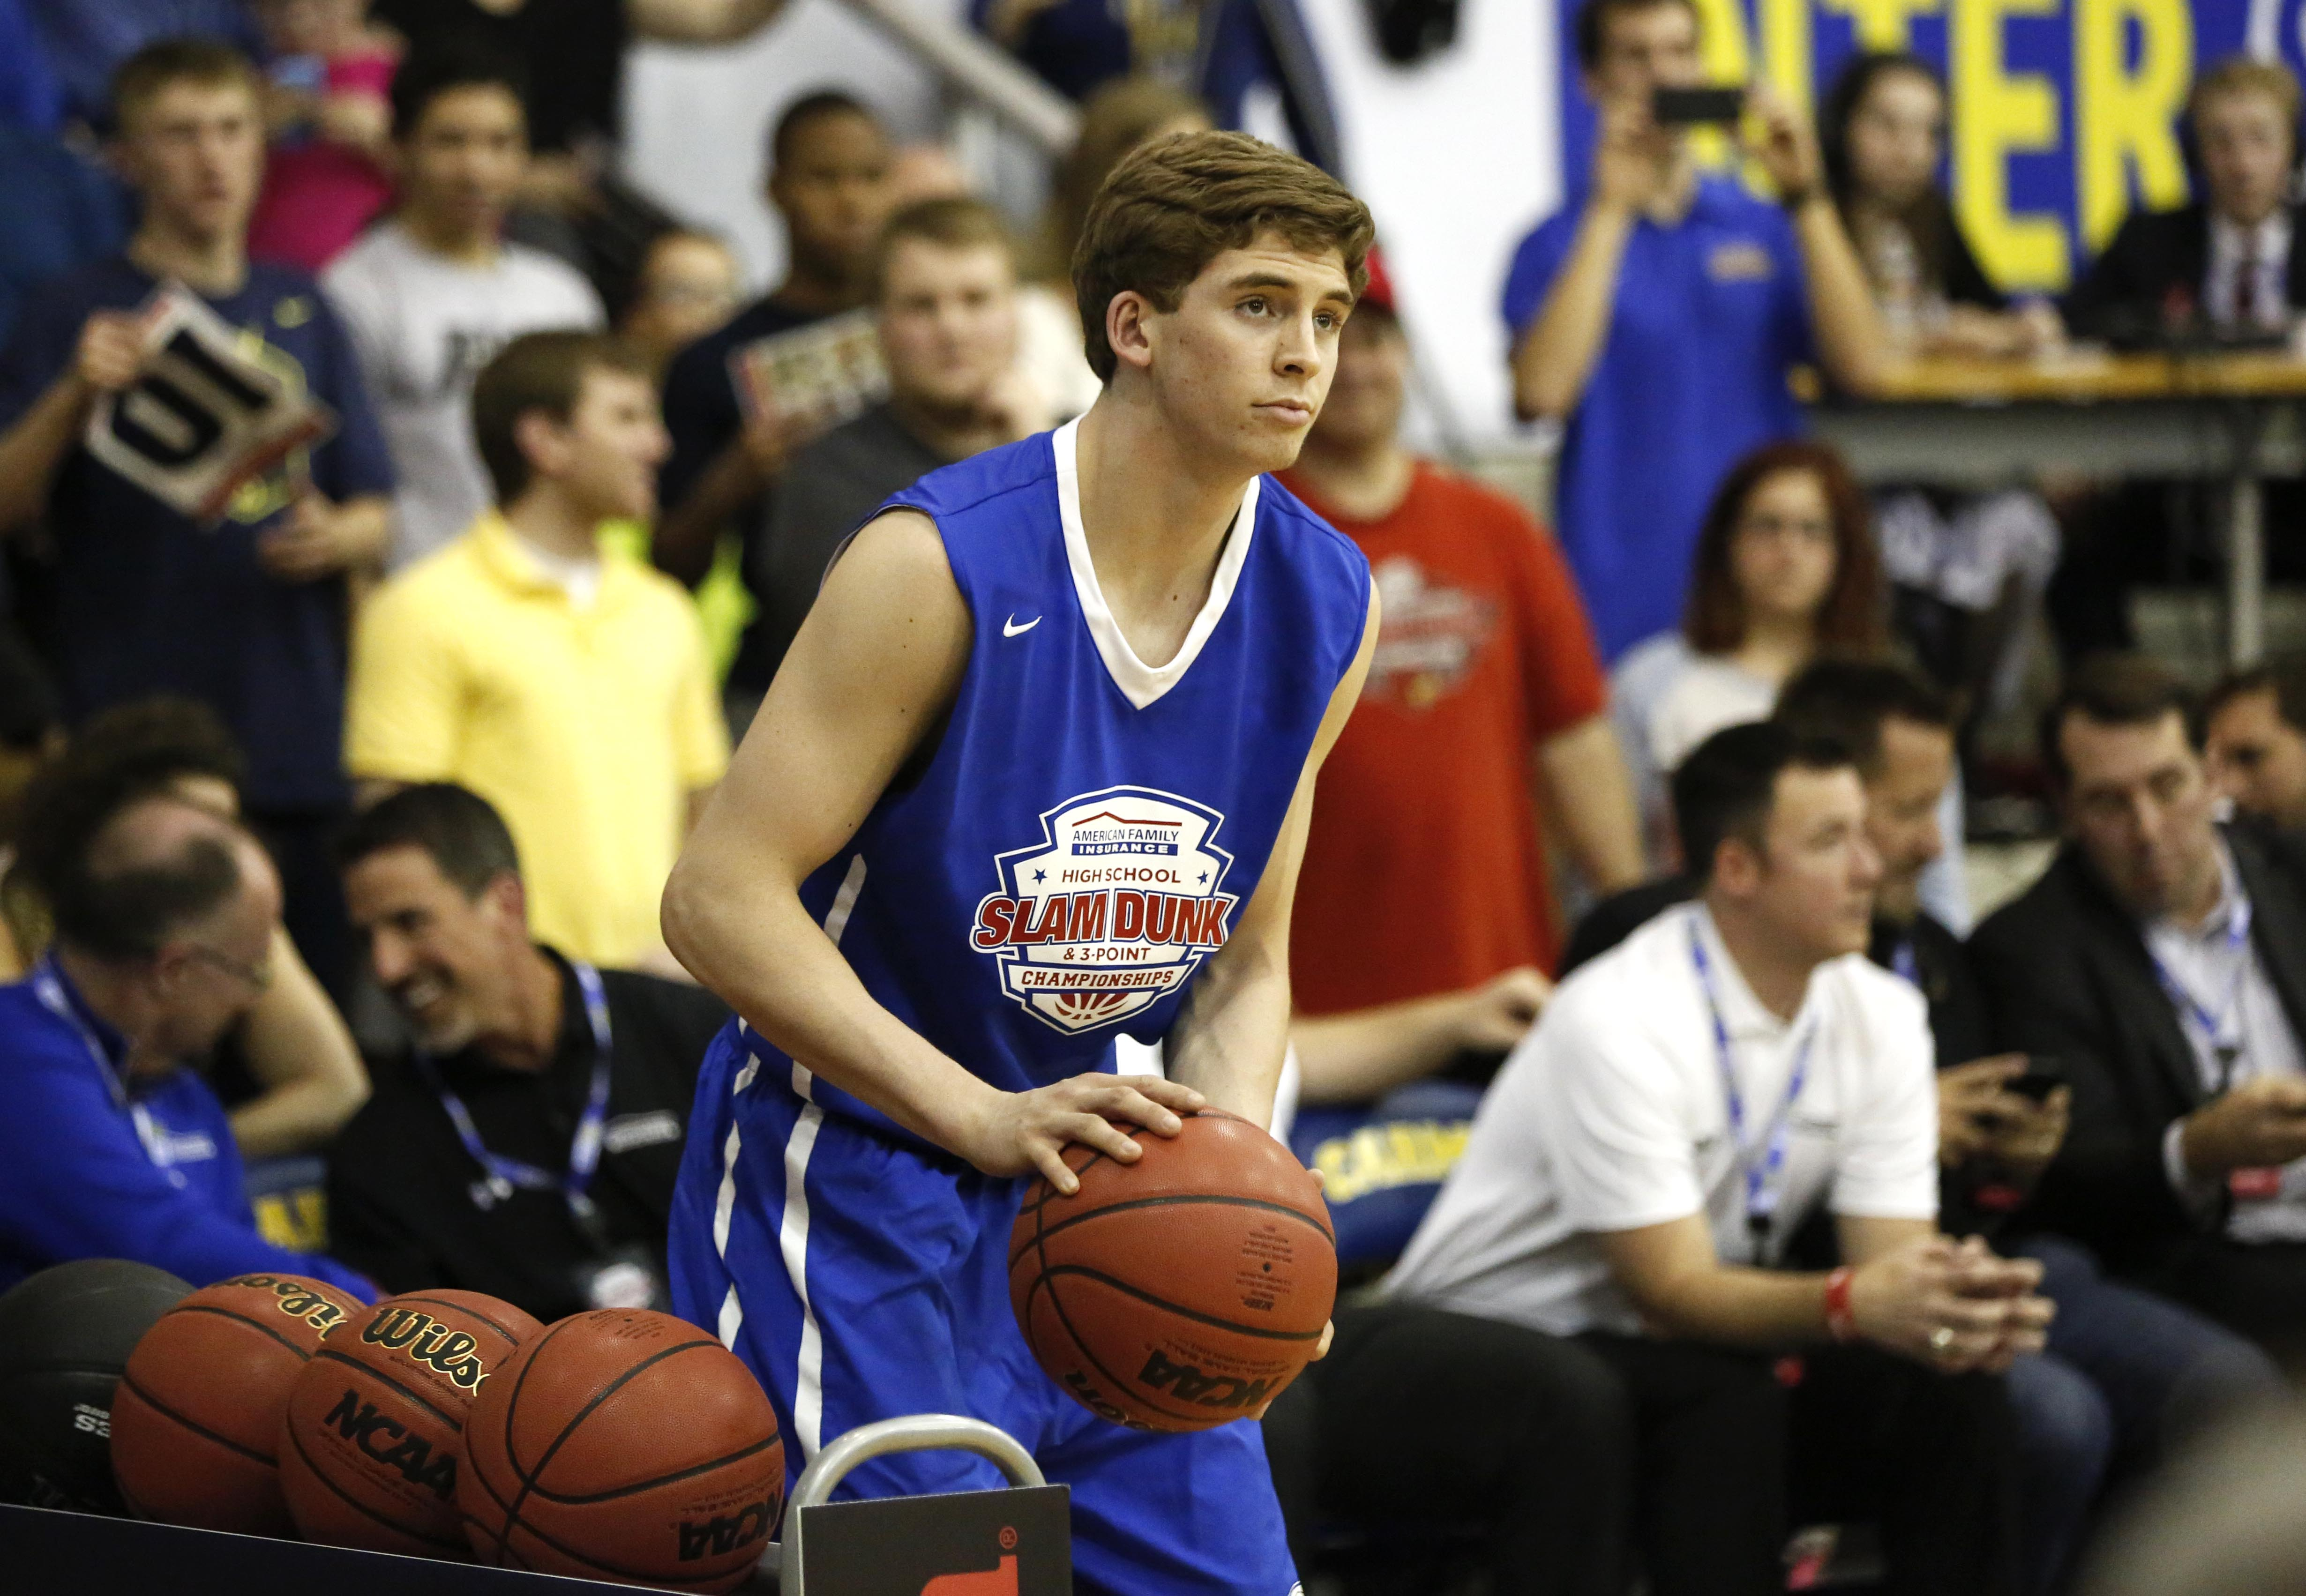 Ryan Cline wins the boys three-point contest at the American Family Insurance High School Slam Dunk and Three-Point Championship (Photo: Aaron Doster, USA TODAY Sports)